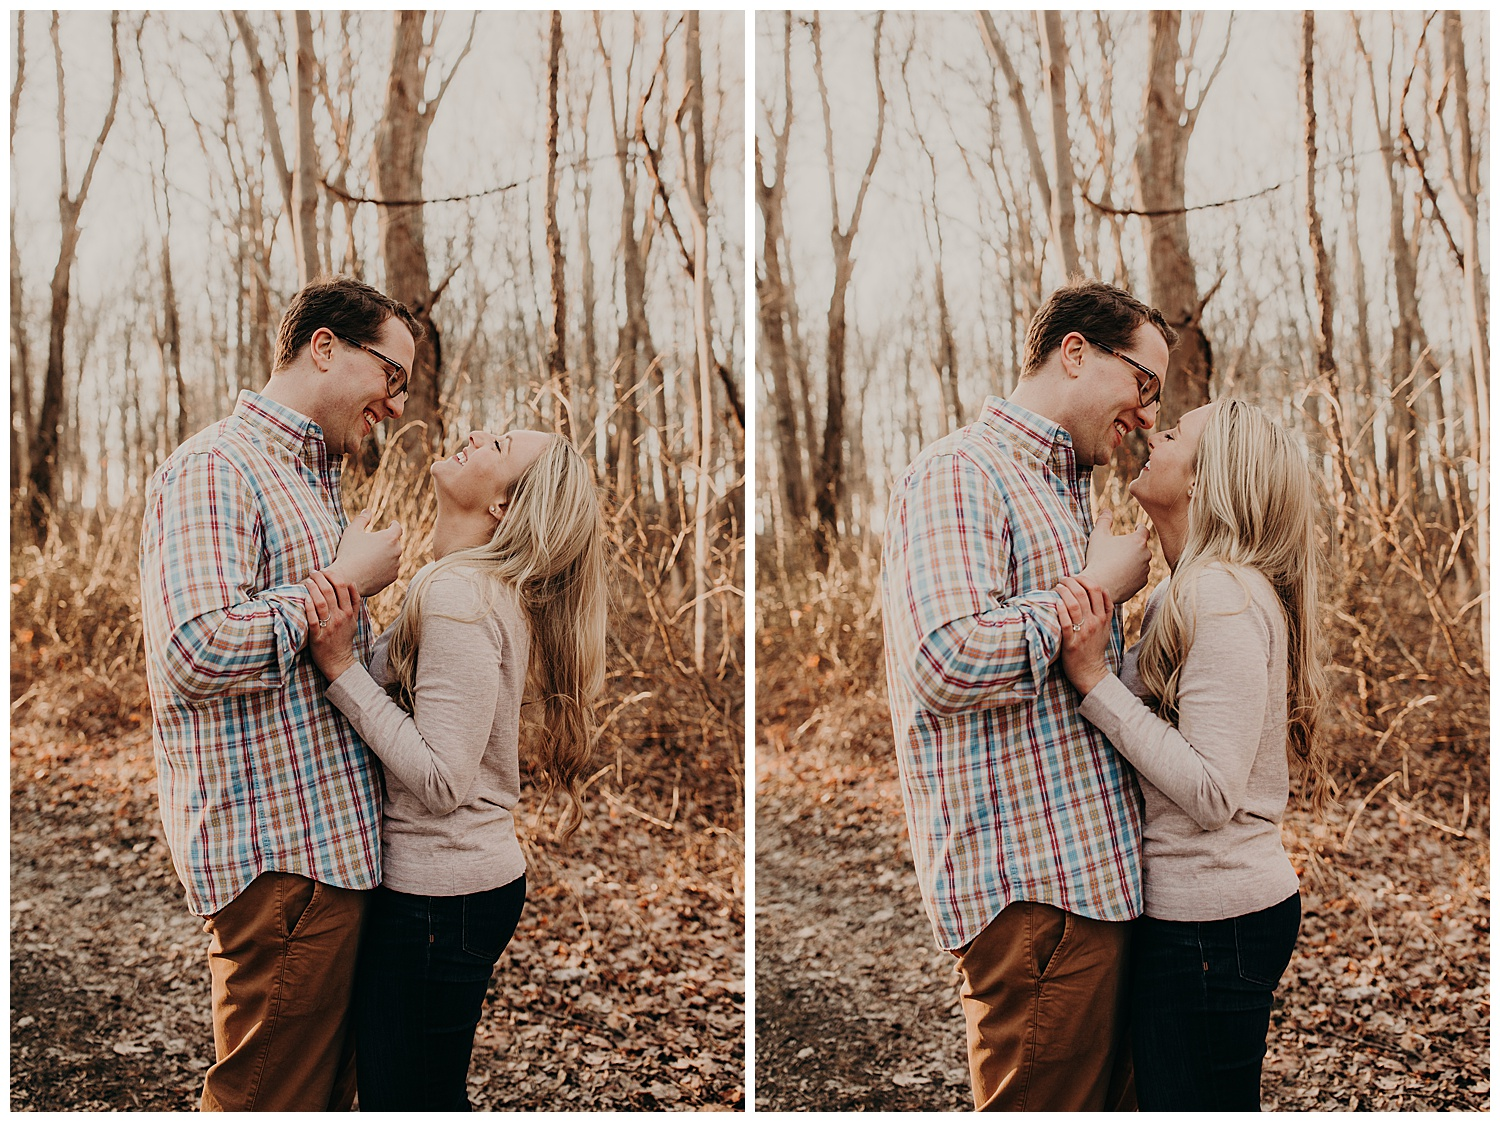 tyler-lauren-colt-state-park-winter-engagement-session-bristol-rhode-island06.jpg